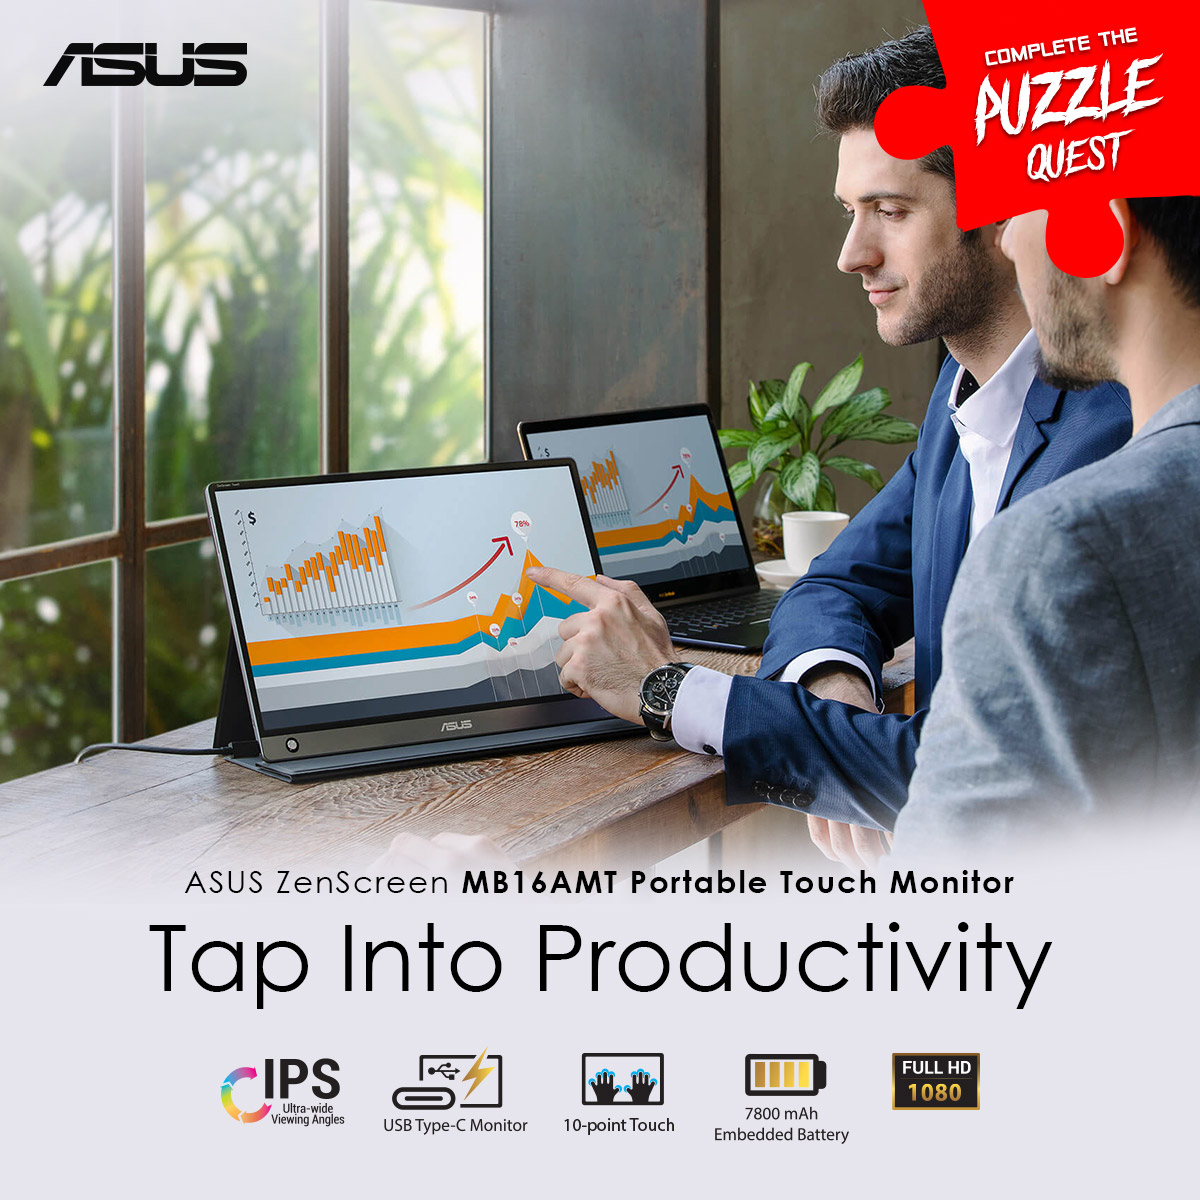 #ASUSPuzzleQuestAnswer  HINT: This slim and lightweight portable monitor with a large 7800mAh built-in battery is designed  take your mobile productivity to new heights.  ANSWER: ASUS ZENSCREEN  MB16AMT  💡 Know more: https://t.co/BWdWwx1ziX   #ASUSROGMonitors https://t.co/oSfKOUyEV1